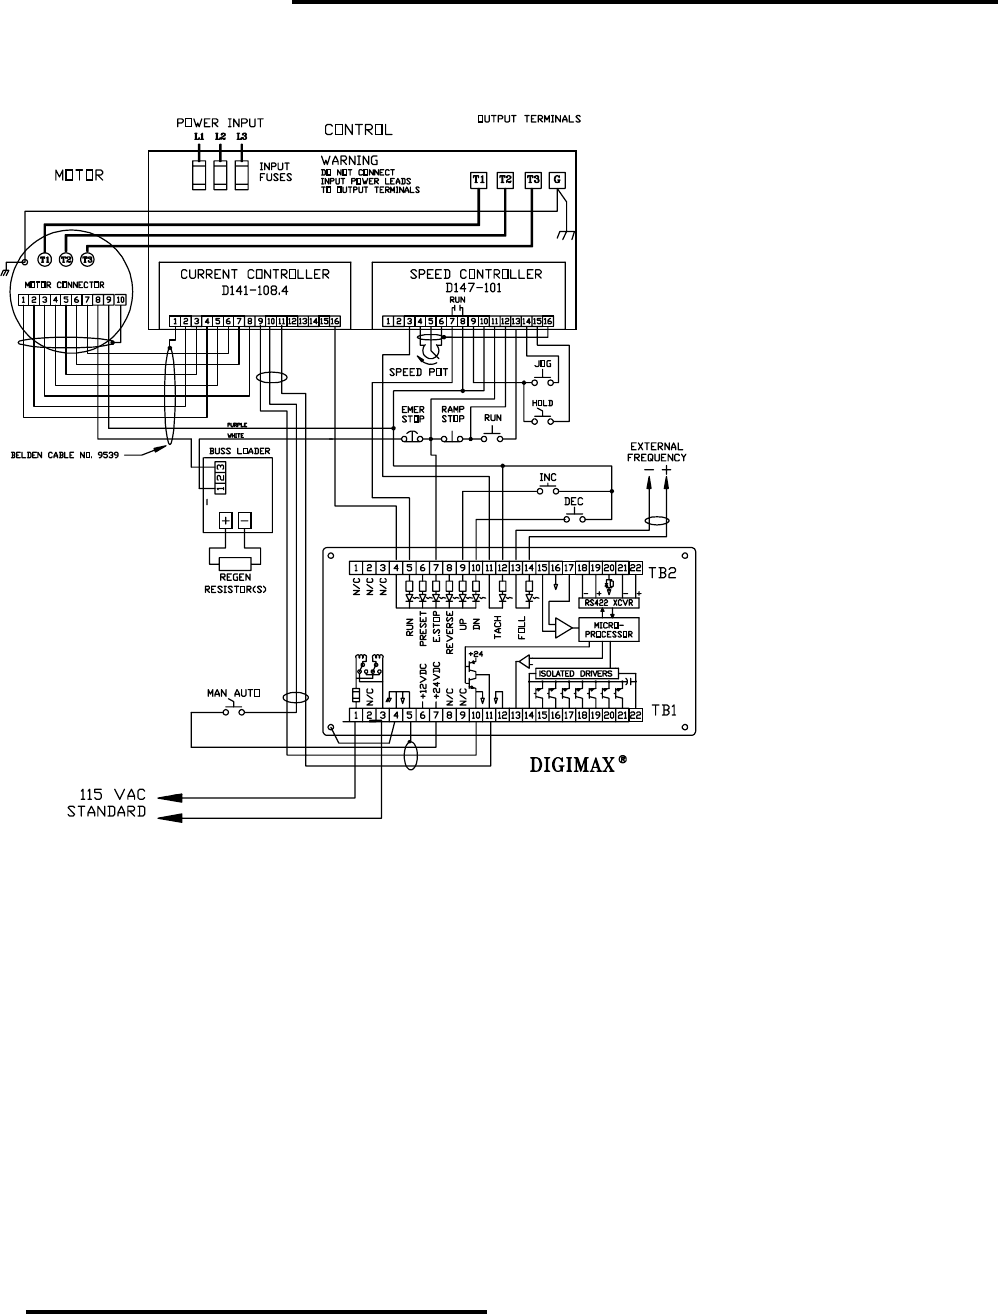 Powertec Regenerative Brushless Dc Motor Control 1000ar Users Manual North Star Capacitor Wiring Diagram Model Installation And Operation Page 29